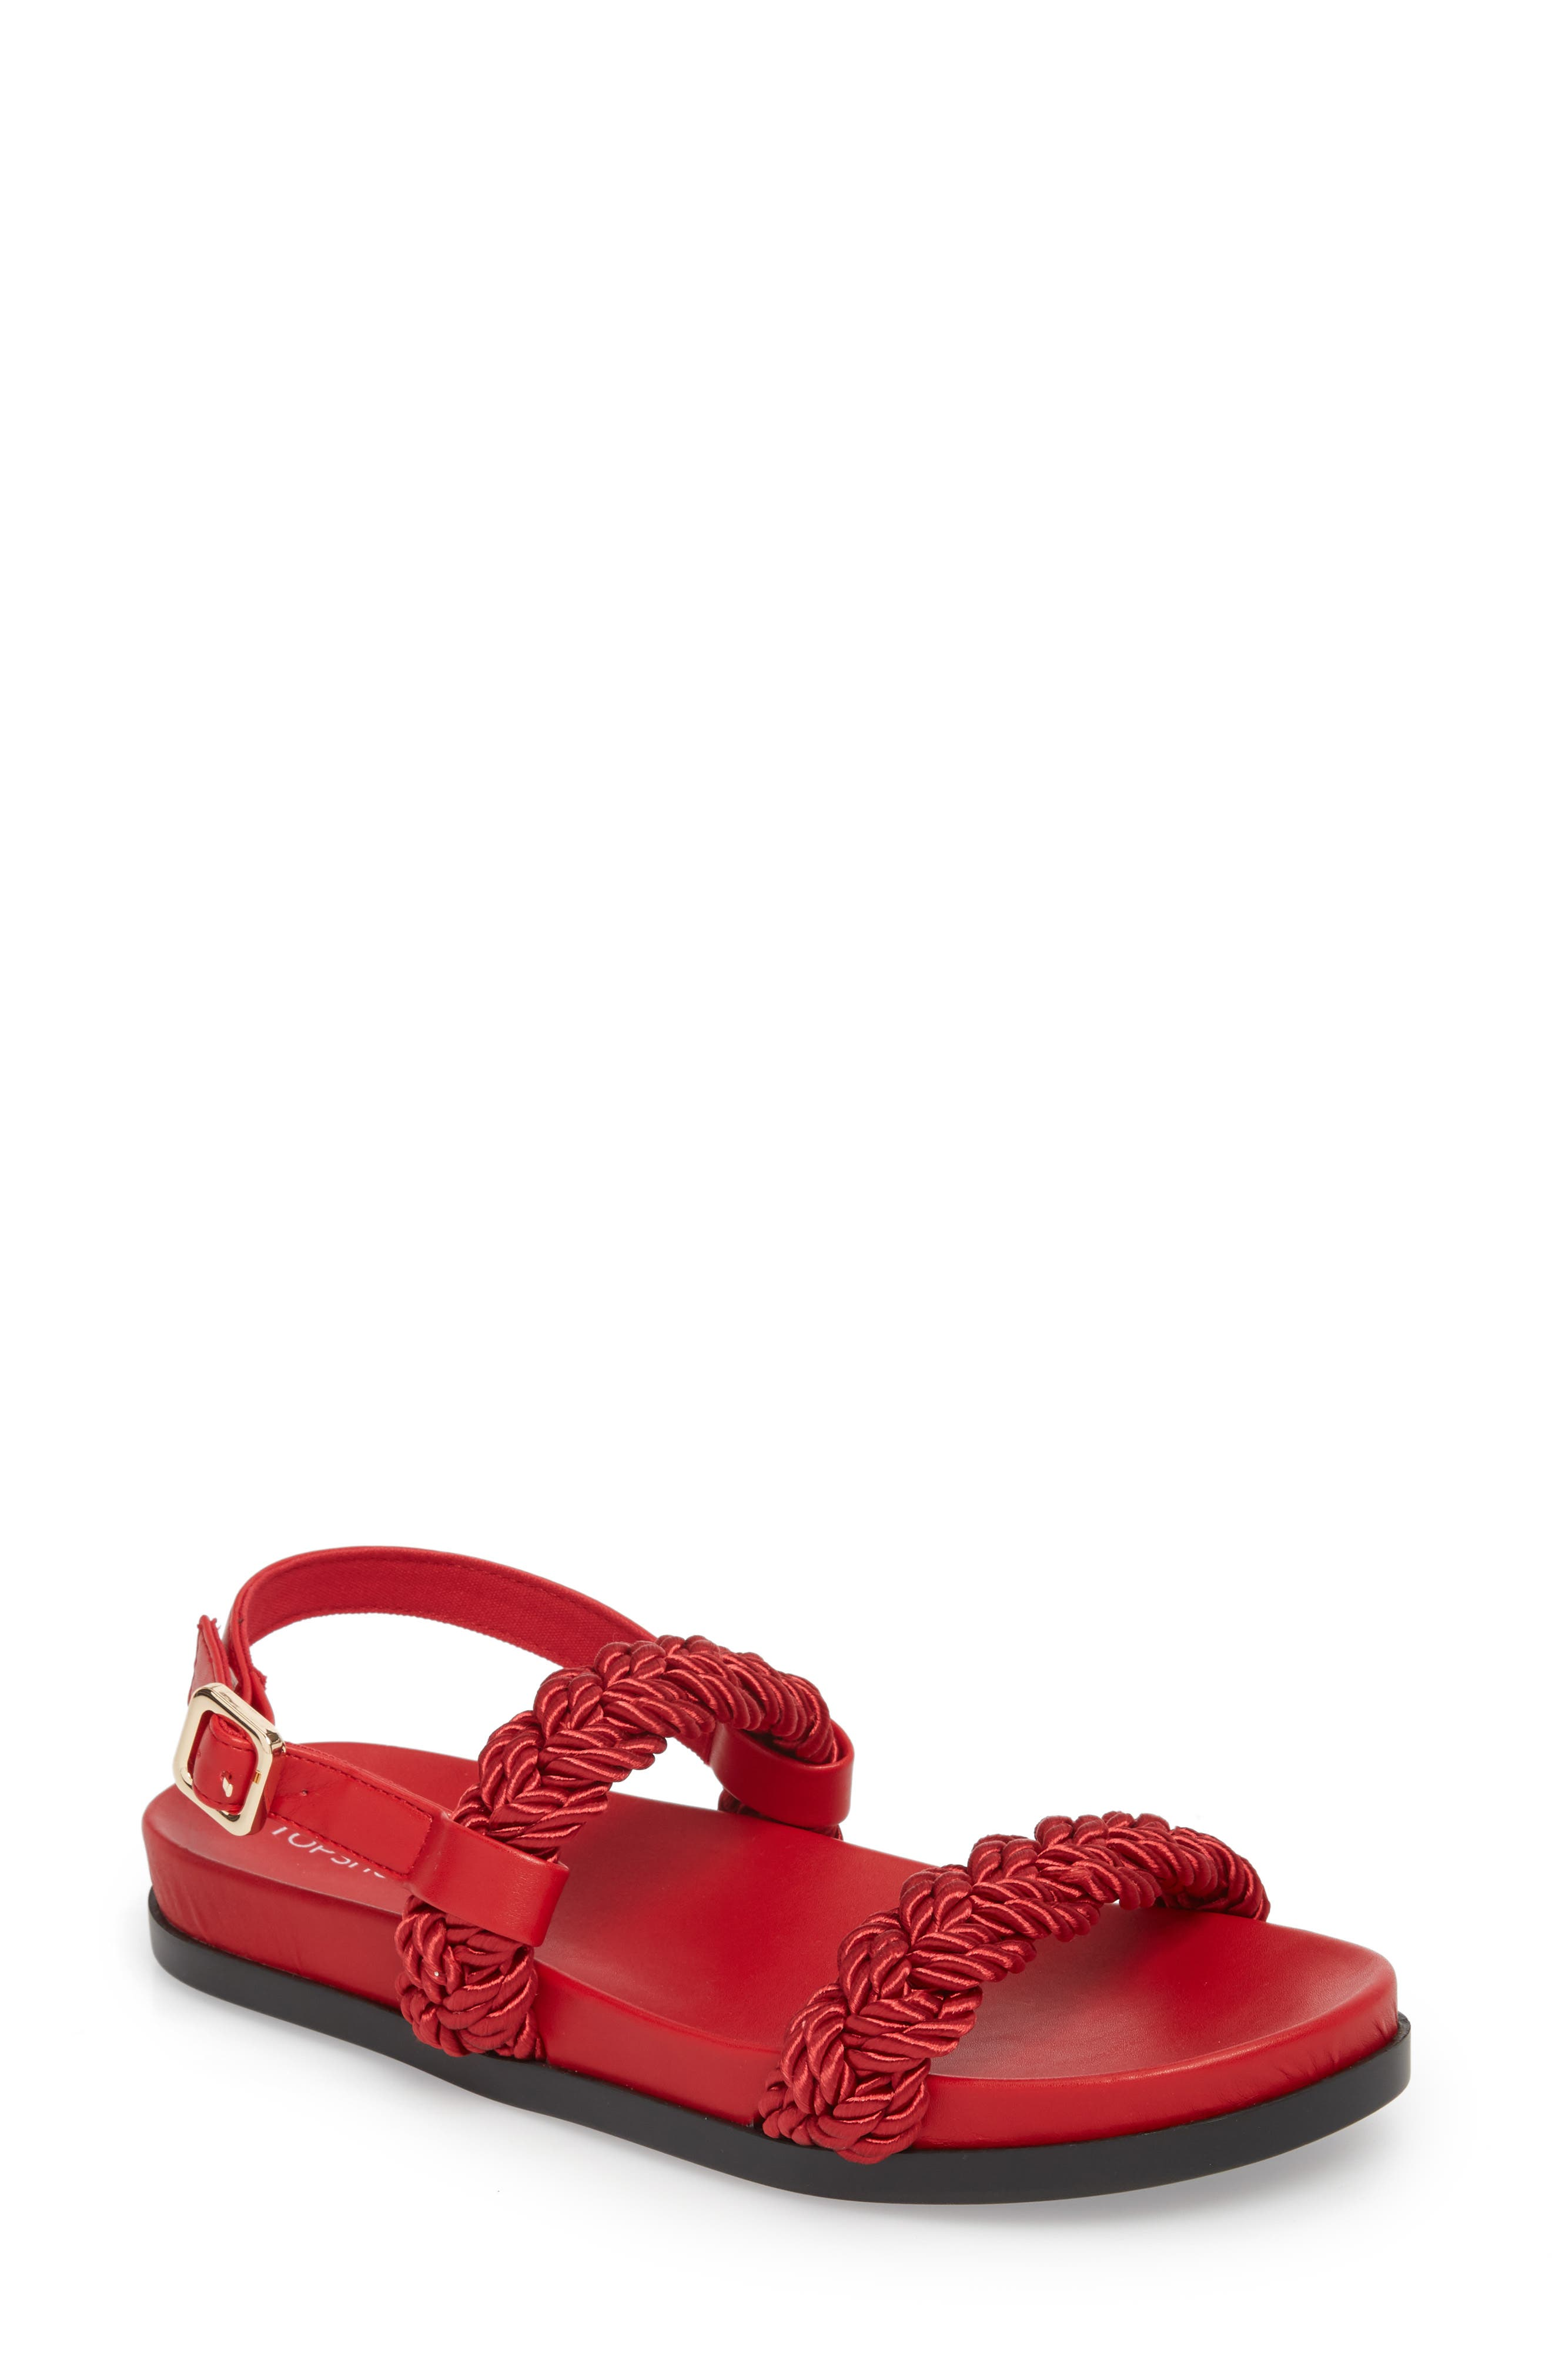 Hackney Rope Footbed Sandals,                         Main,                         color, Red